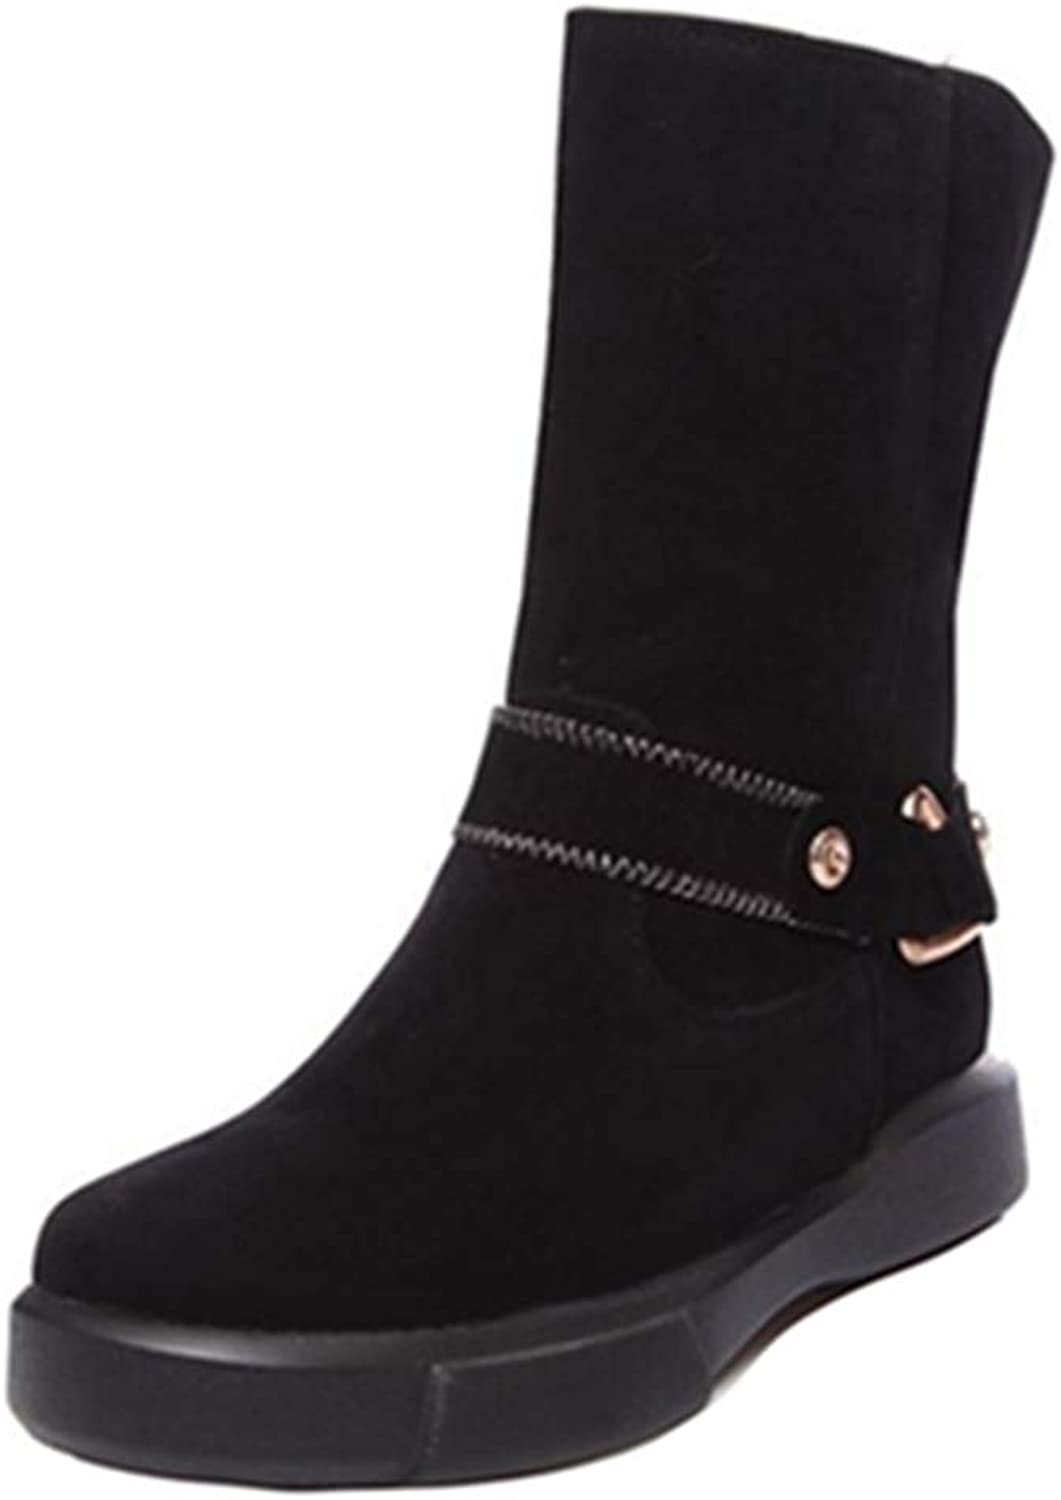 Smilice Women Winter Boots Casual Mid-Calf Warm Boots